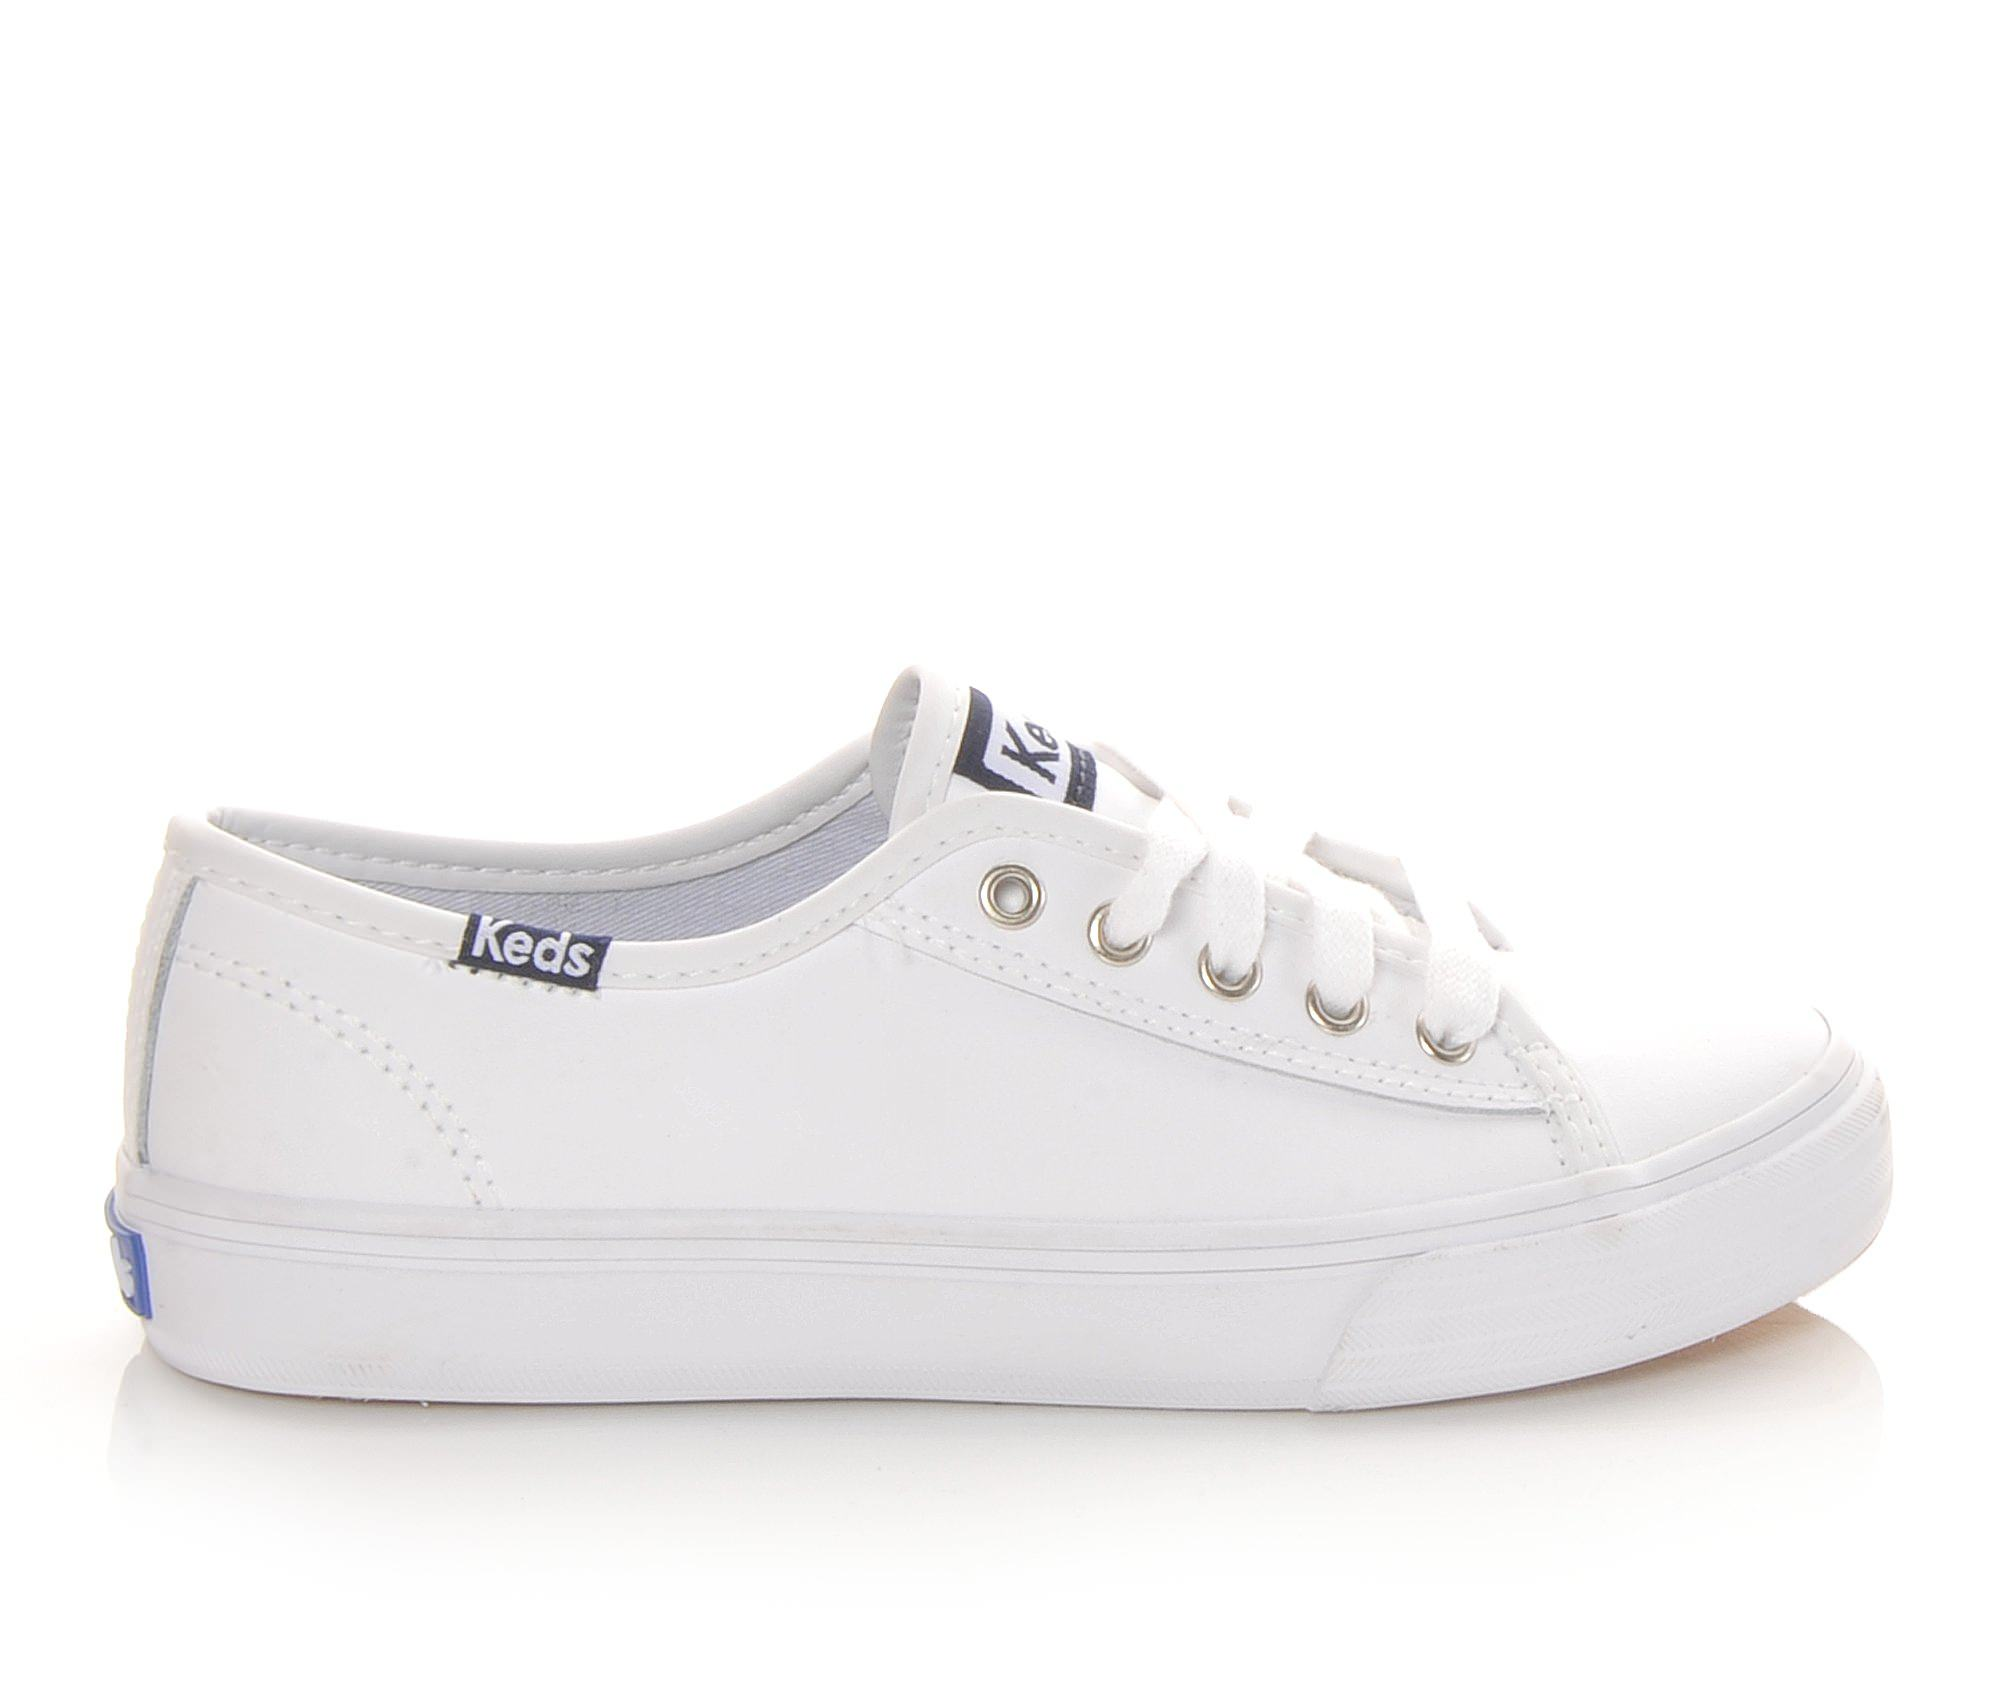 Girls' Keds Double Up Leather Sneakers (White)